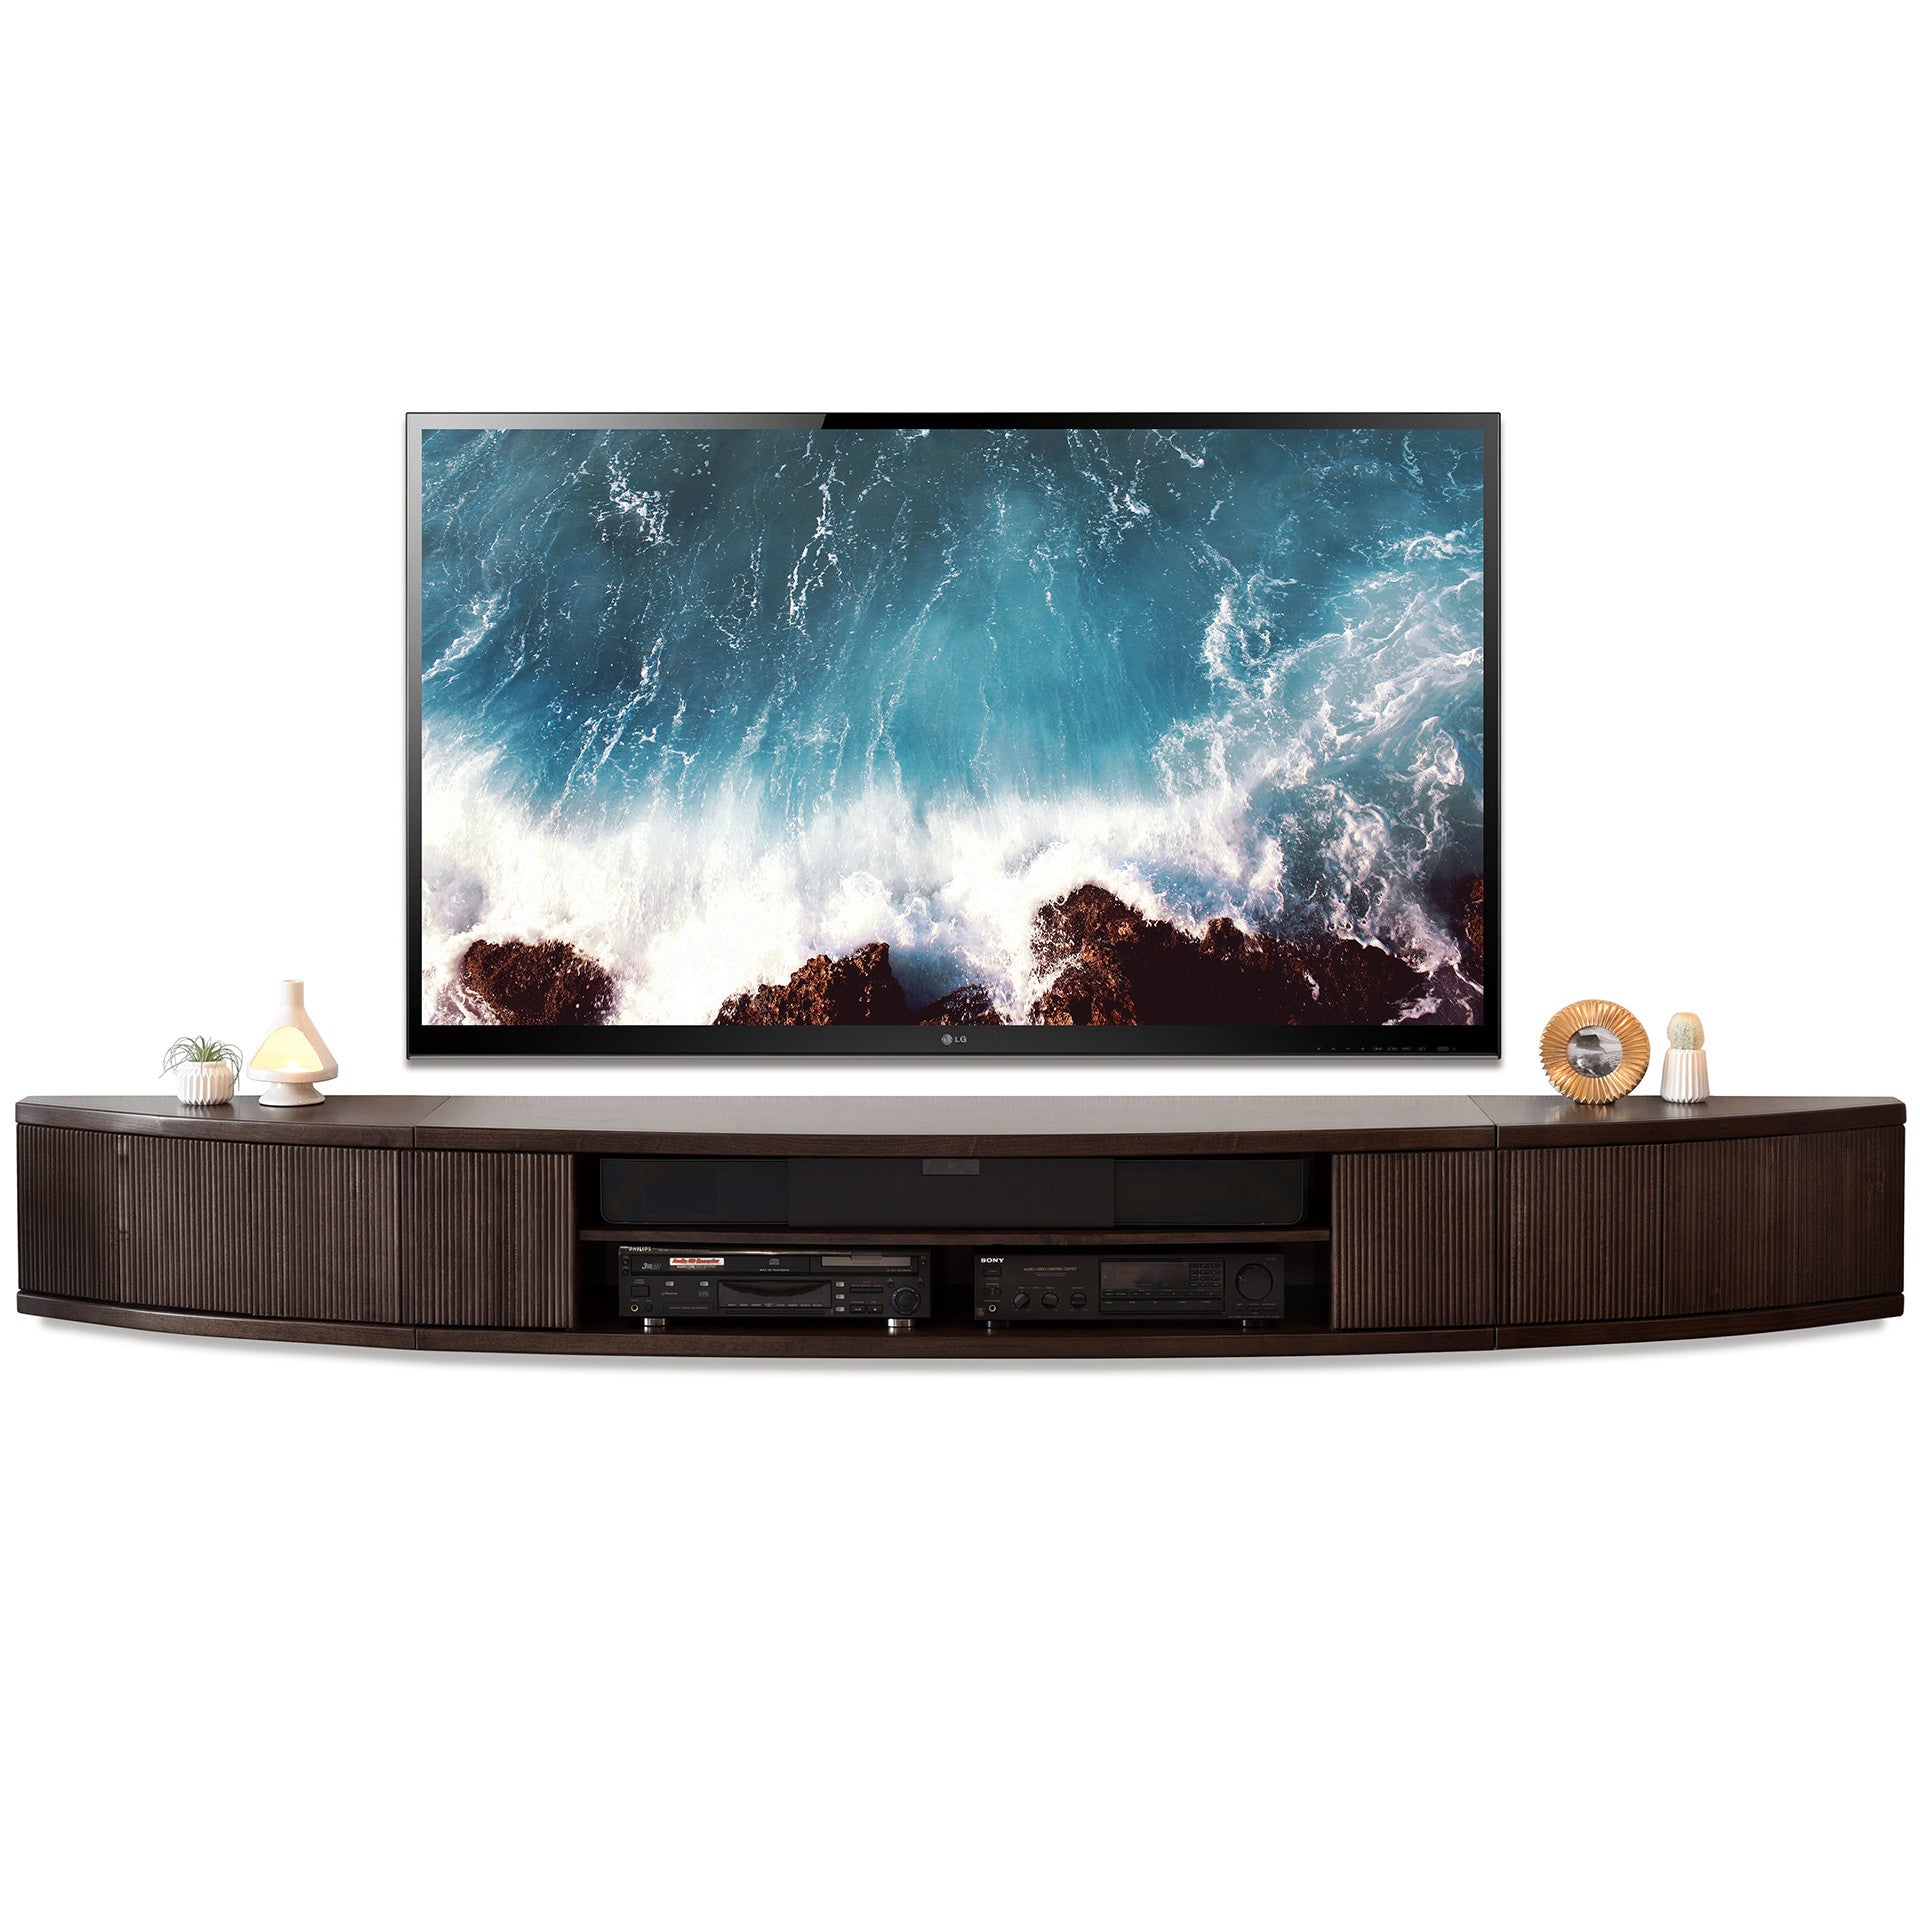 wall mount floating entertainment center tv stand  arc  espresso  - wall mount floating entertainment center tv stand  arc  espresso